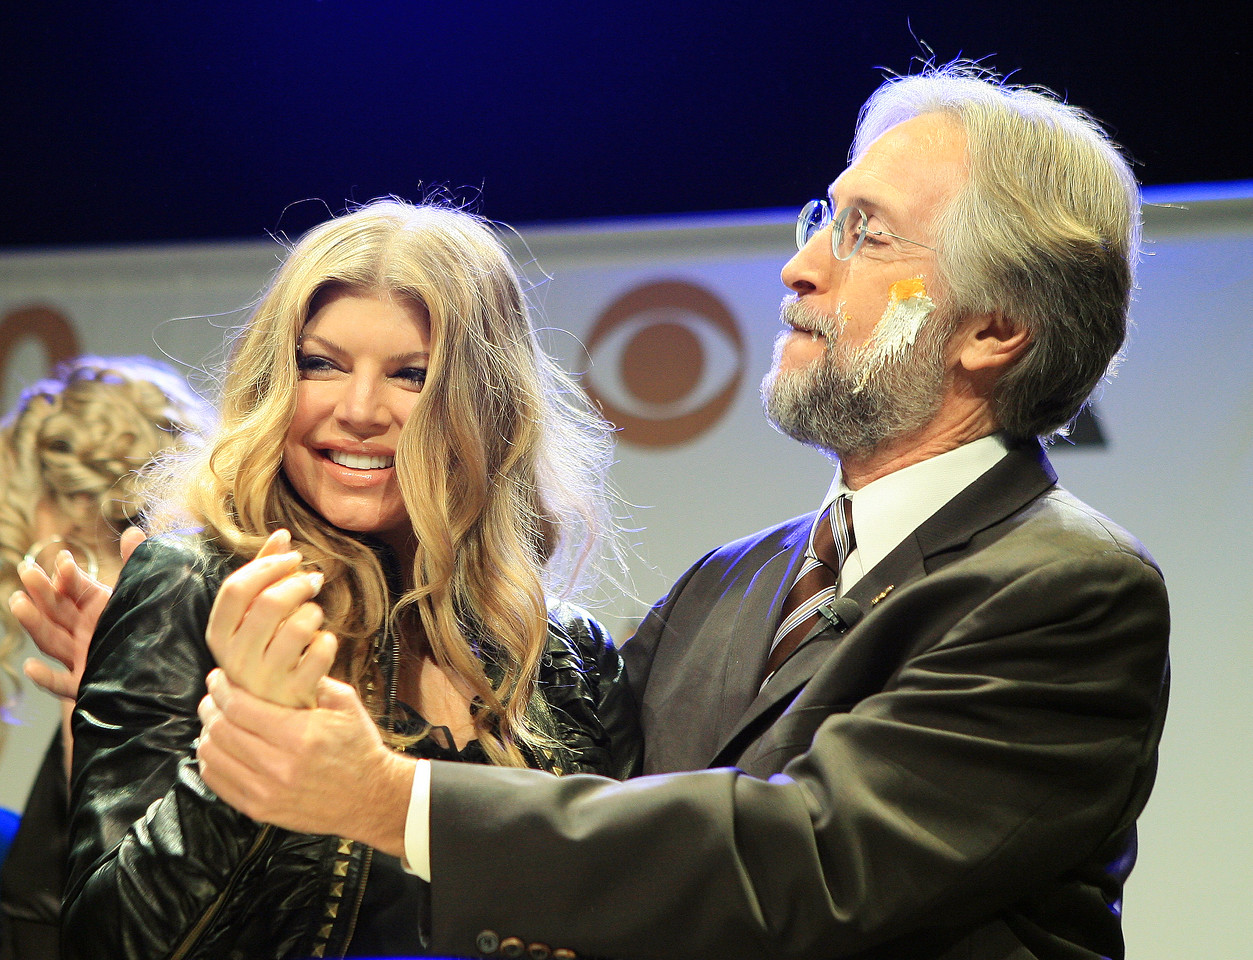 Fergie (L) and Neil Portnow announce the 50th Annual Grammy Awards nominations at The Henry Ford Musicbox Theater  in Los Angeles, California, December 06, 2007.  (Pictured: Fergie, Neil Portnow) Photo by Katy Winn/ Elevation Photos